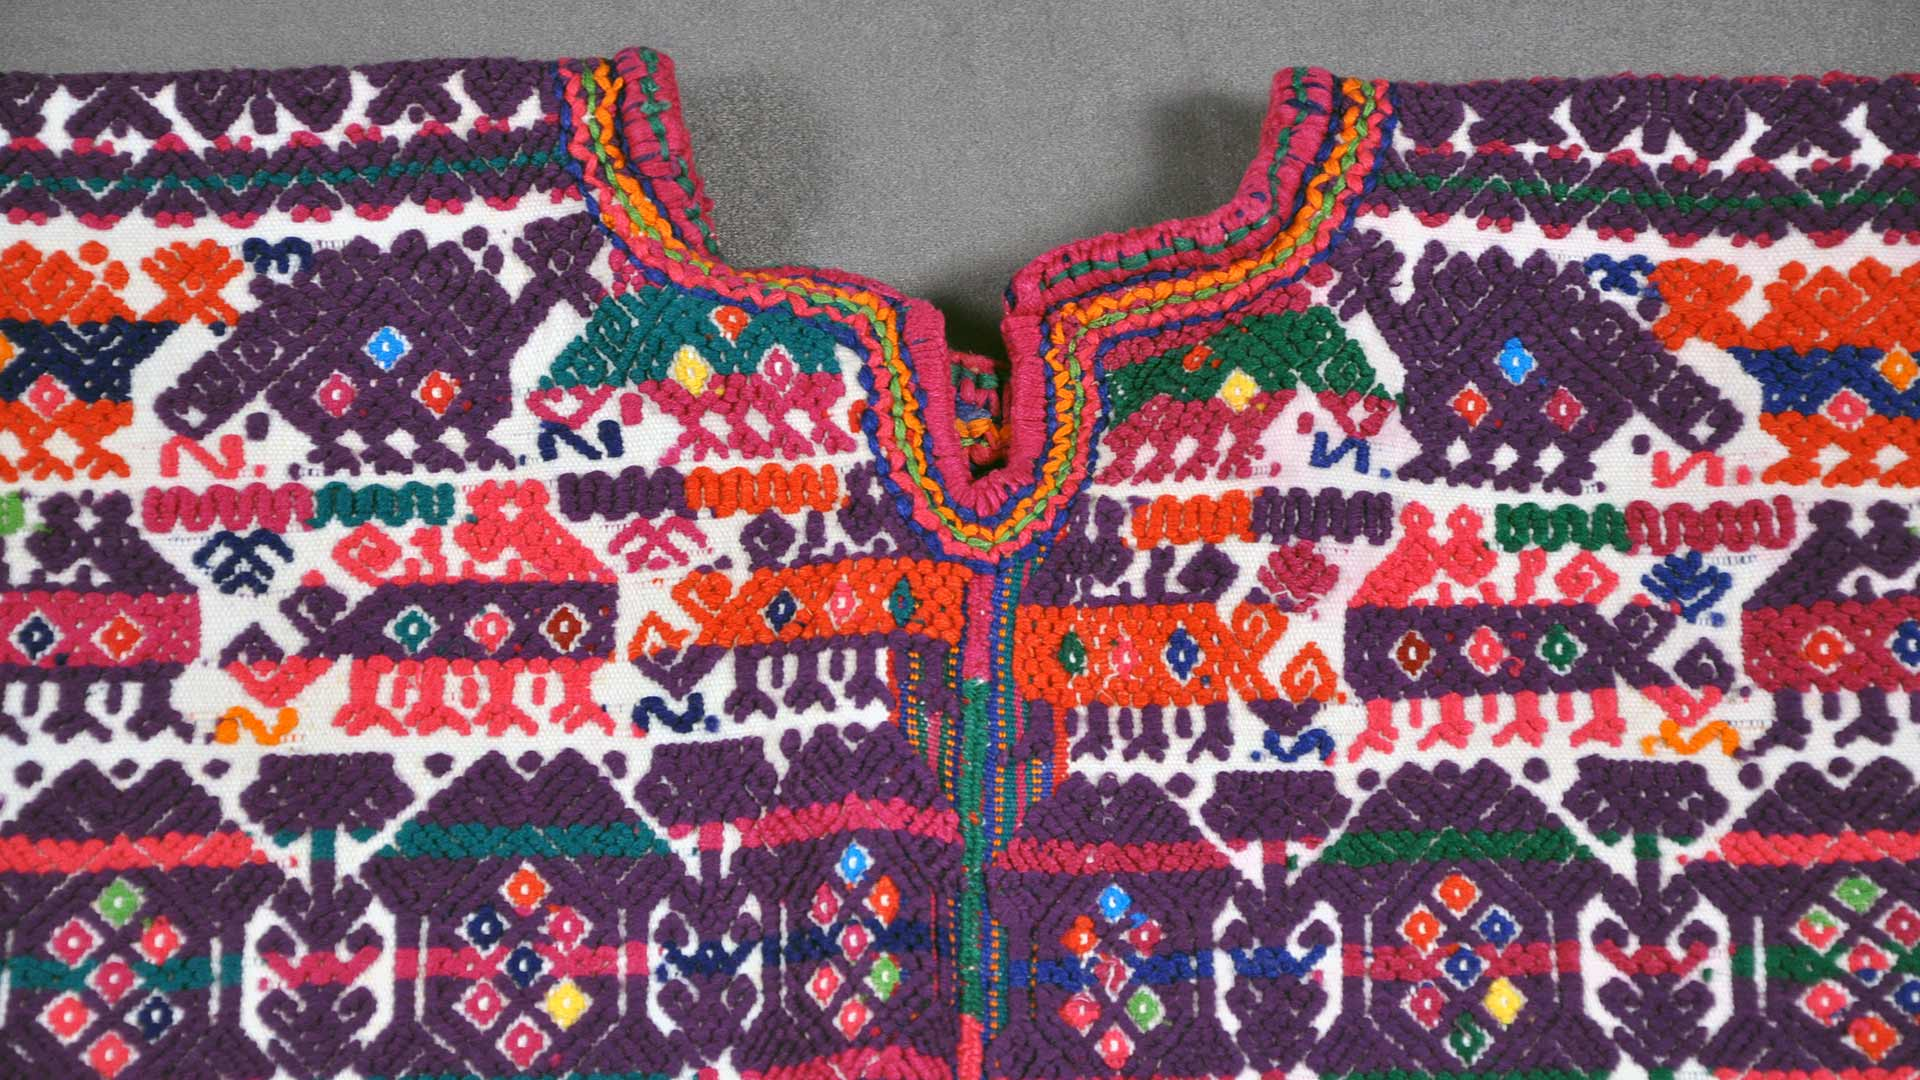 Kieffer-Lopez Collection of Ethnographic Textiles and Artifacts